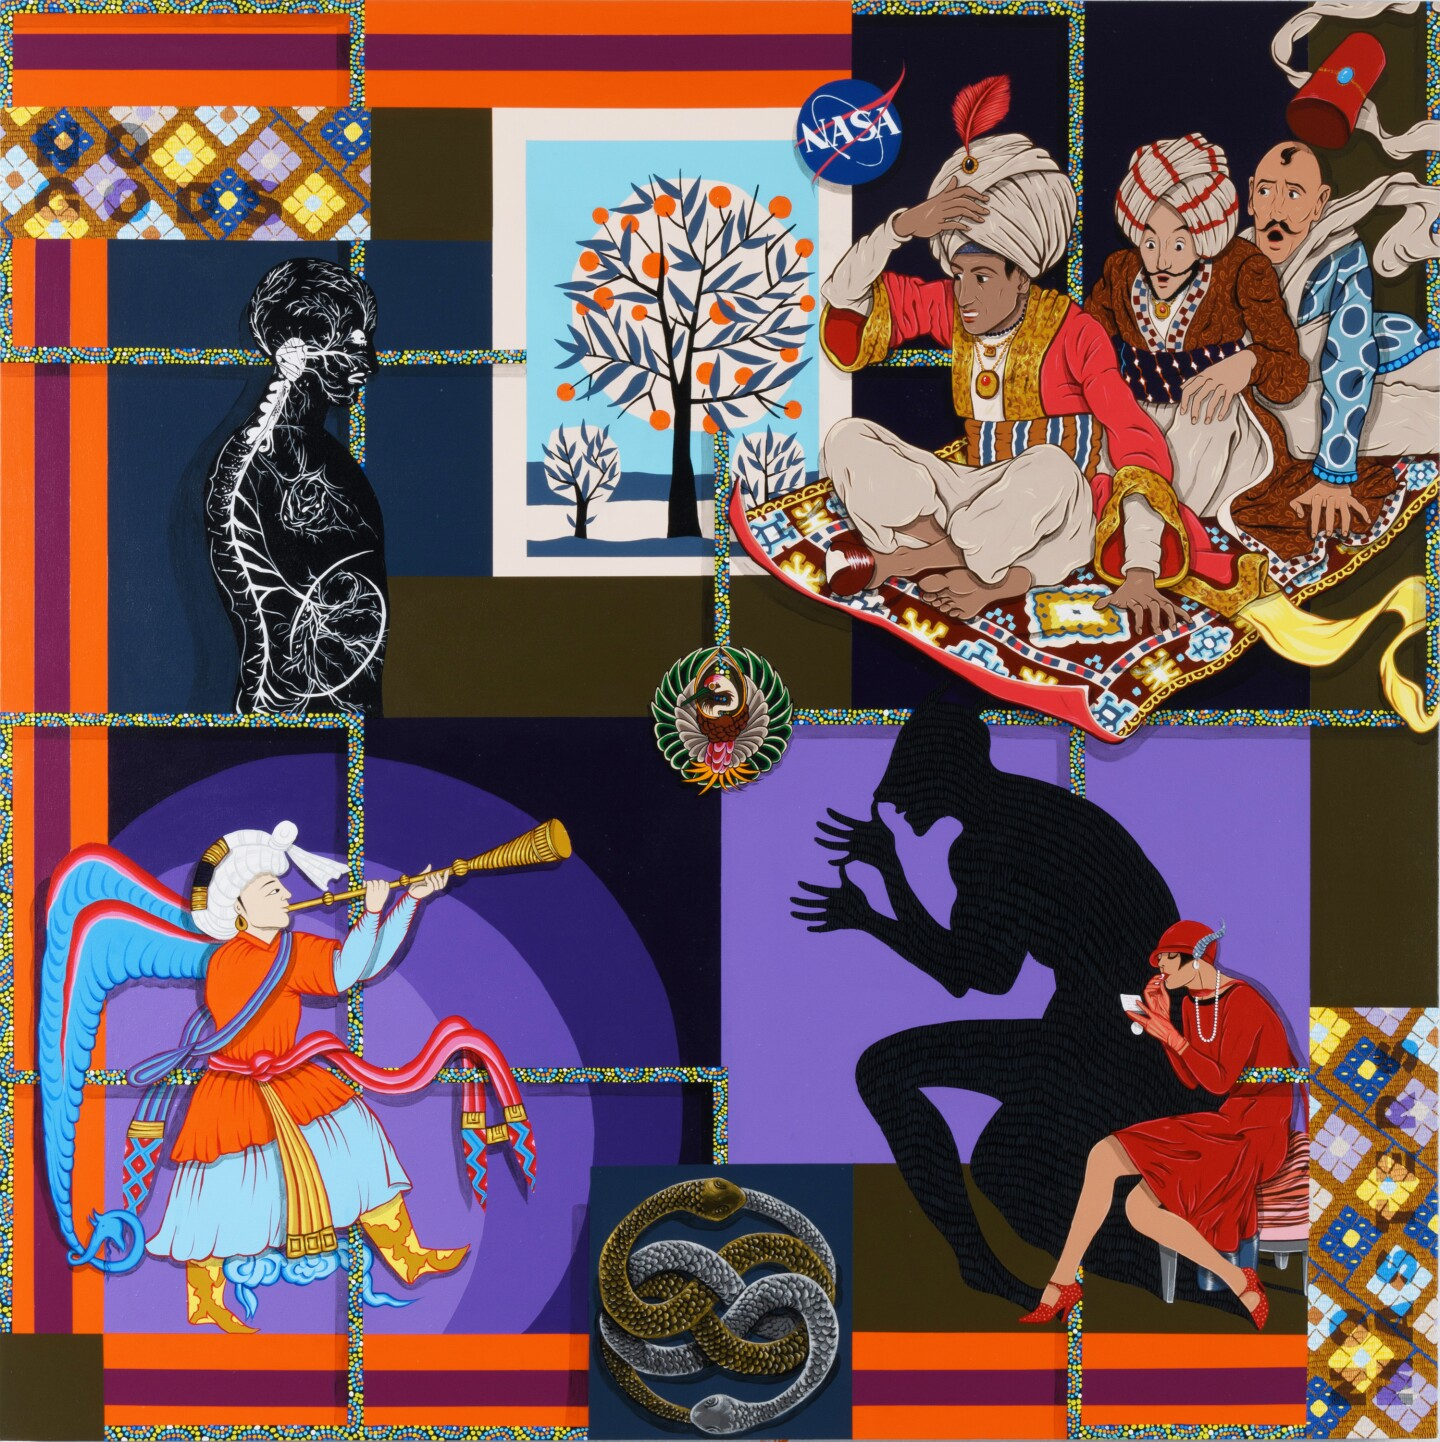 A multi-layered artwork by Amir H. Fallah showing a flying rug with people on board, a man playing a wind instrument and a woman eating something.